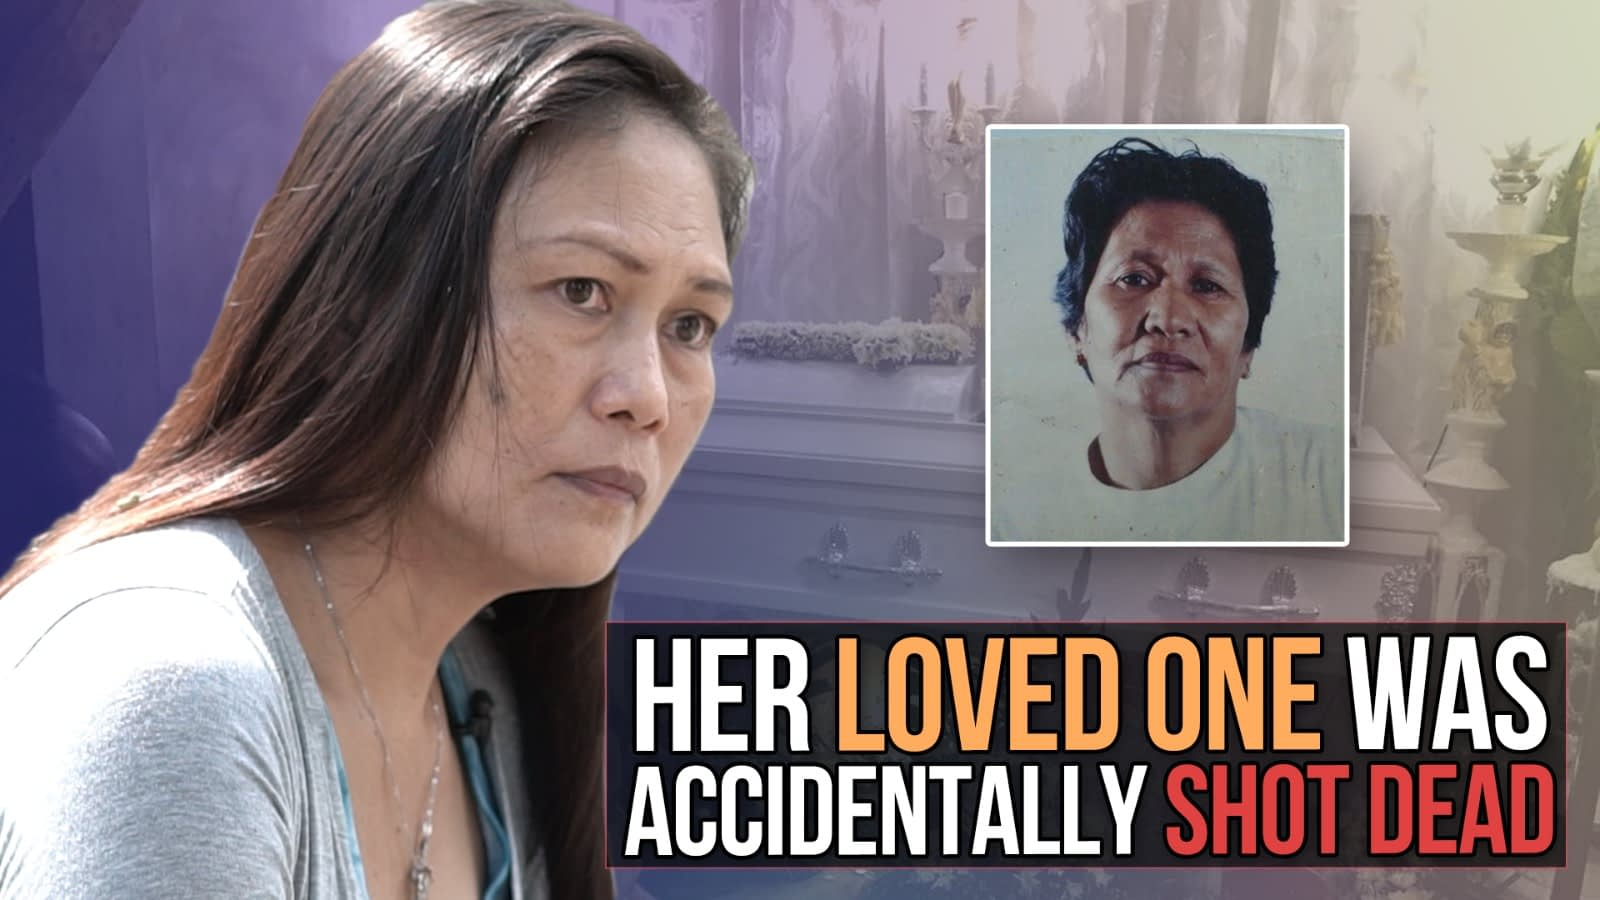 Her loved one was accidentally shot dead!